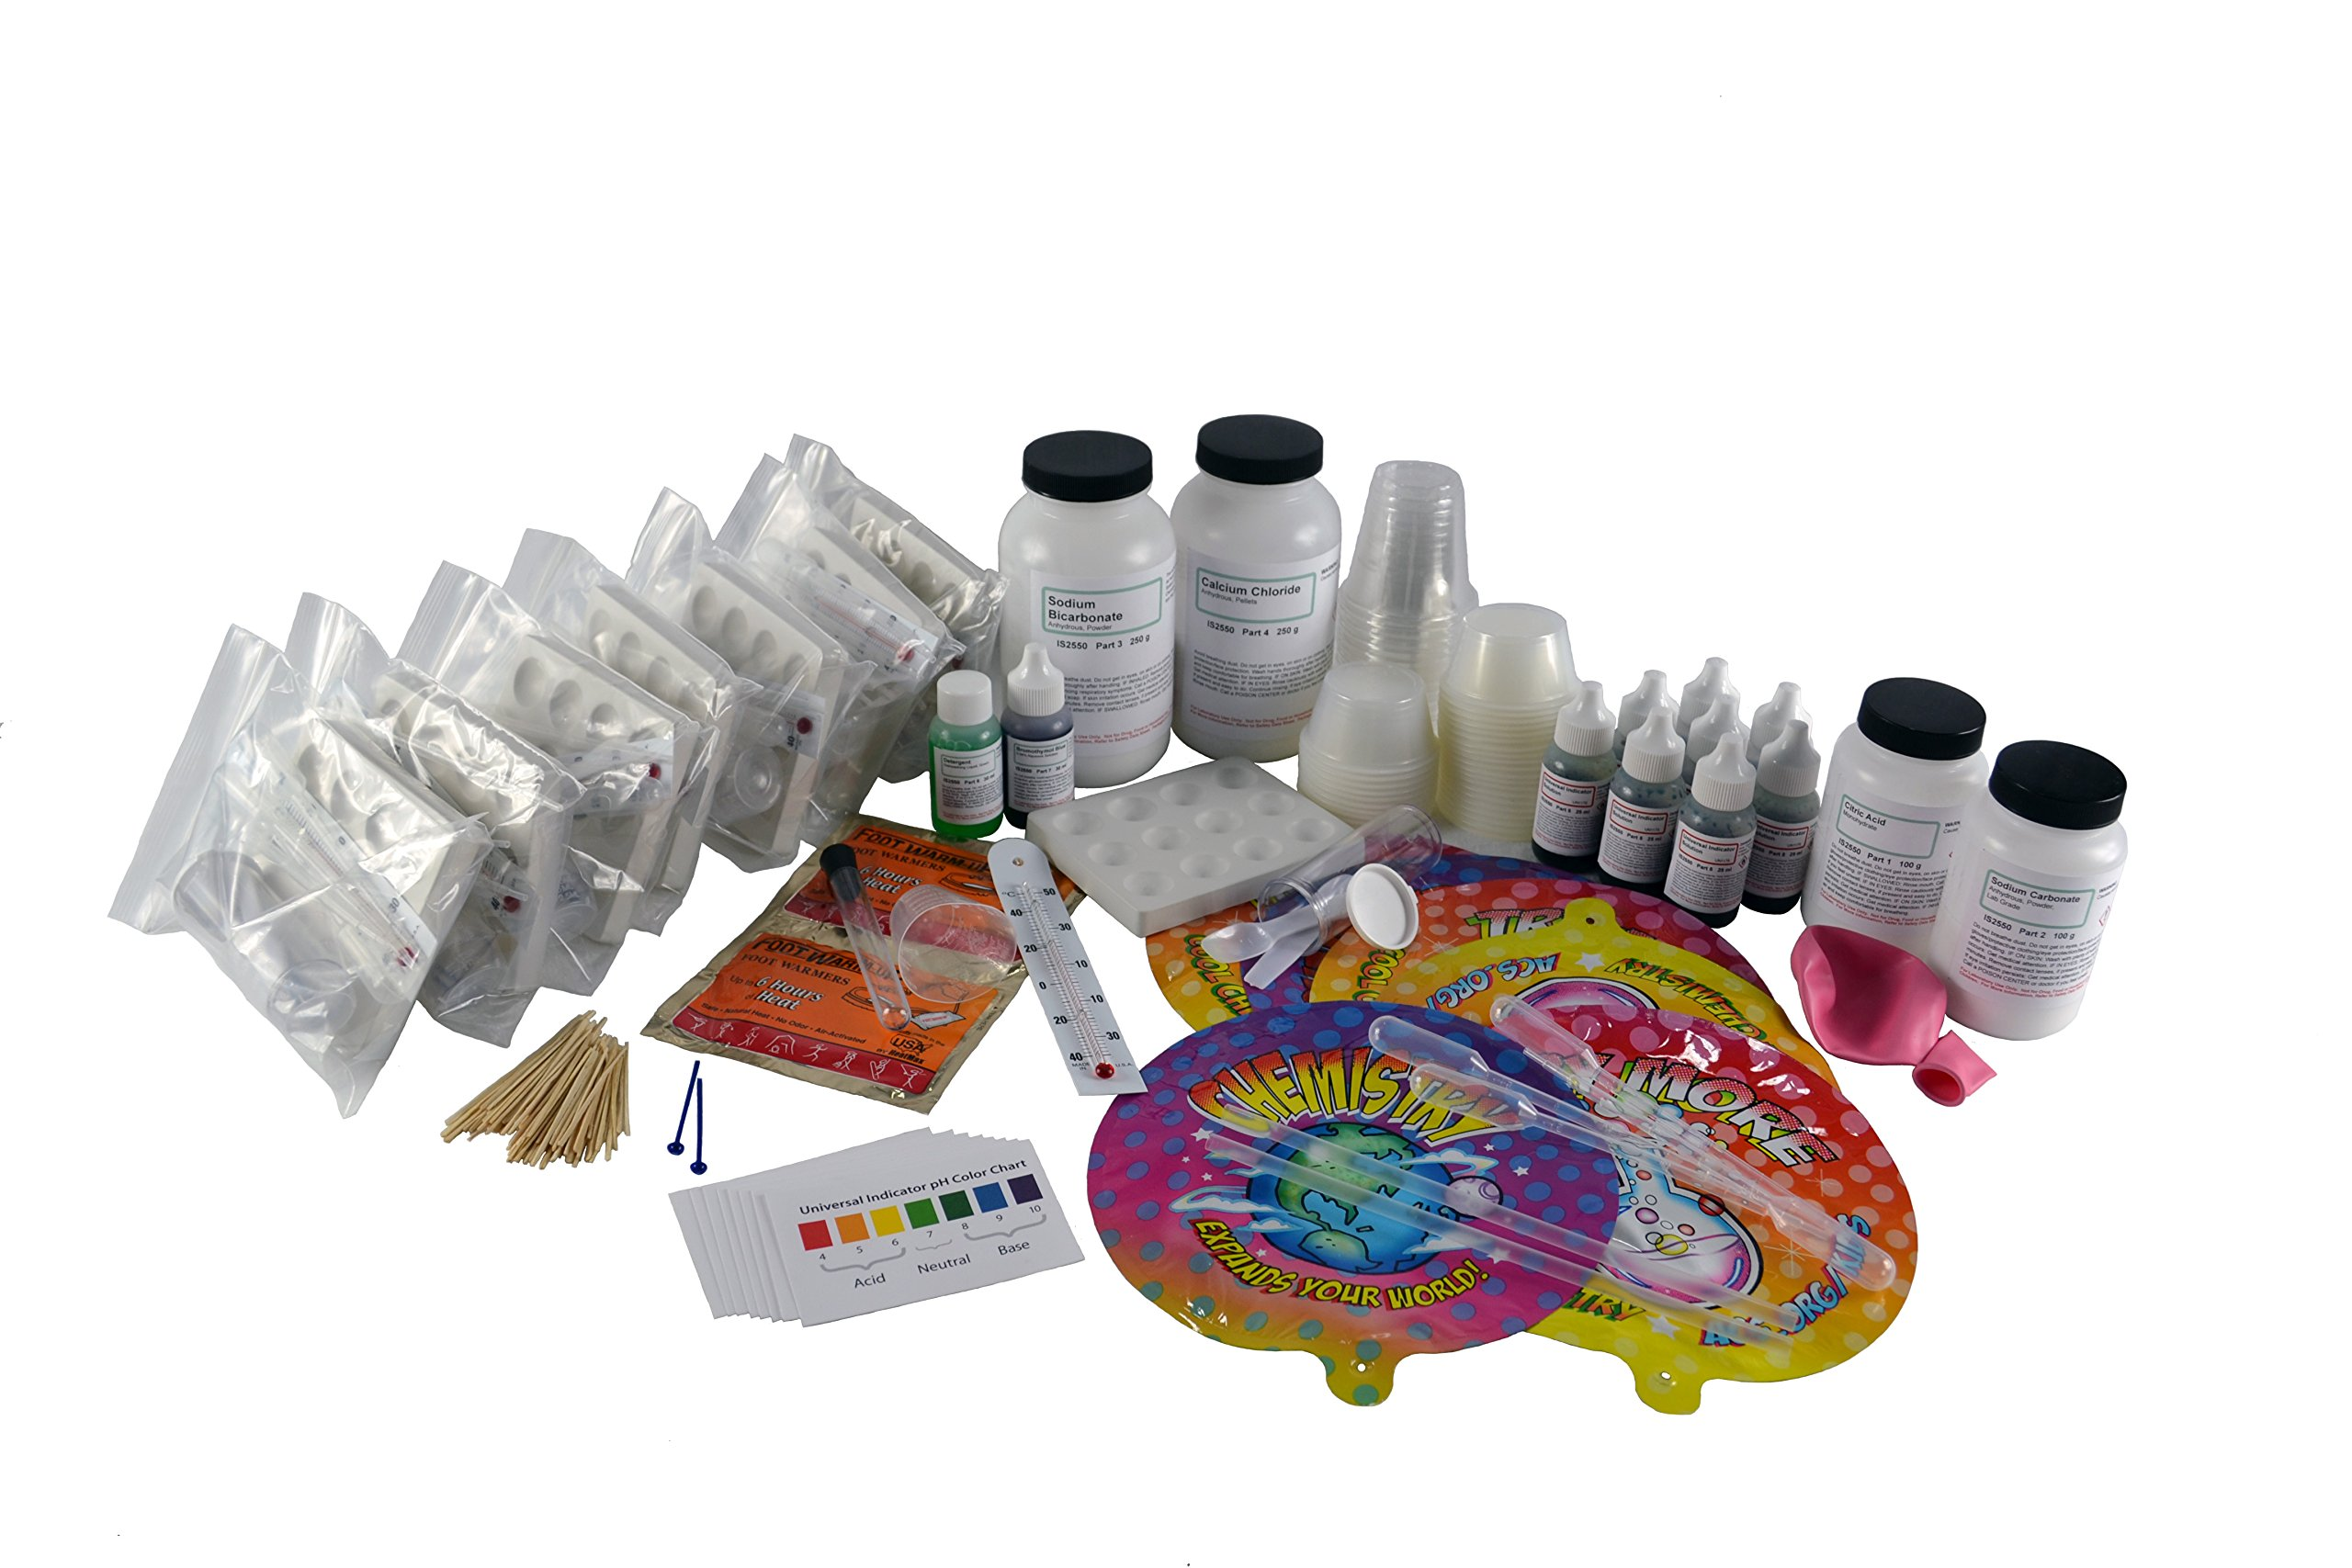 Innovating Science American Chemical Society Chemistry Activity Kit: Investigating Your World (Supplies for 8 Groups)